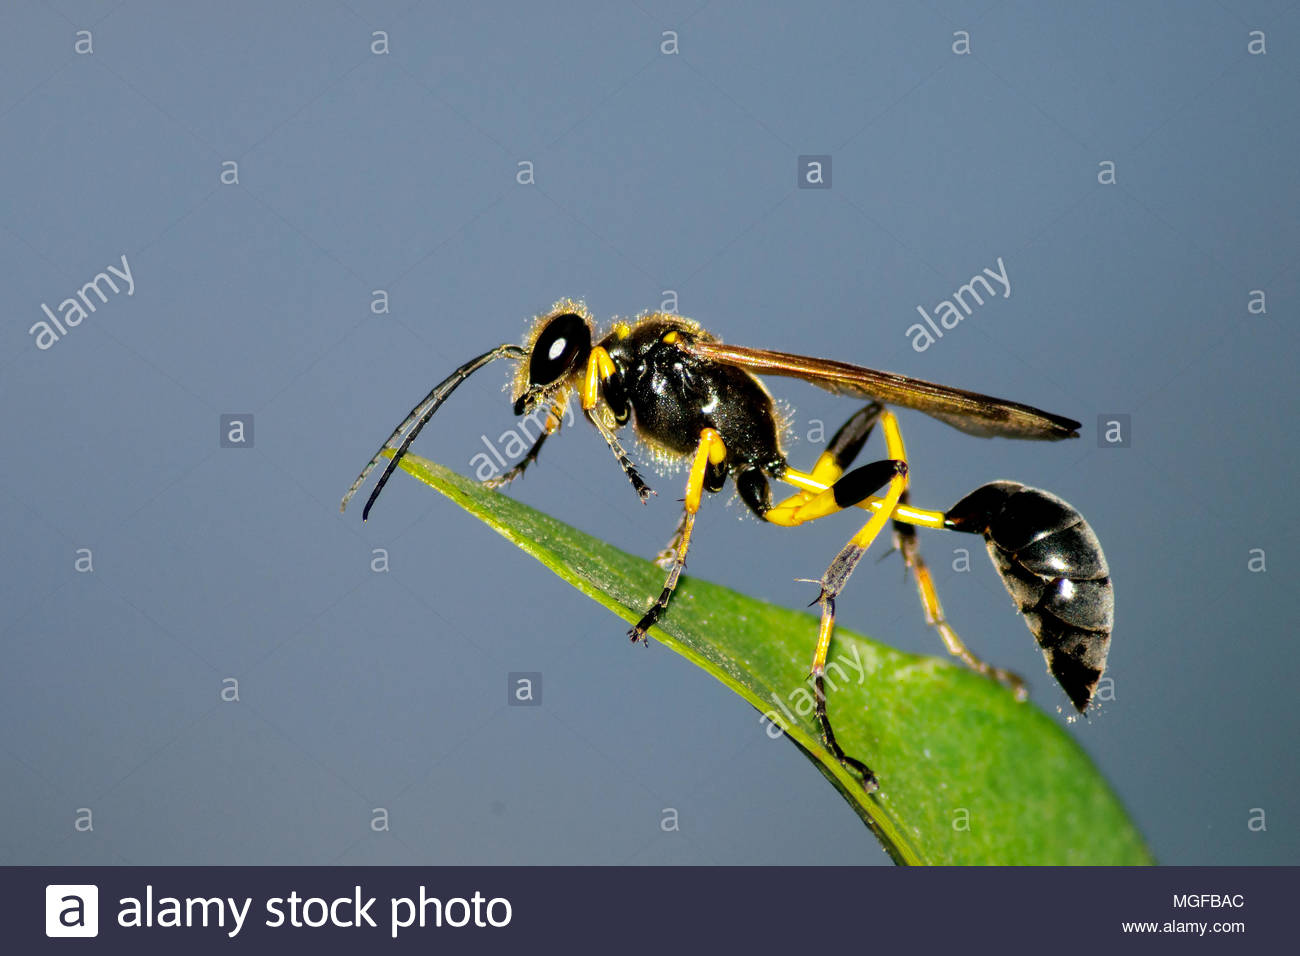 Close up shot of sphecidae with black and yellow vibrant colors. - Stock Image